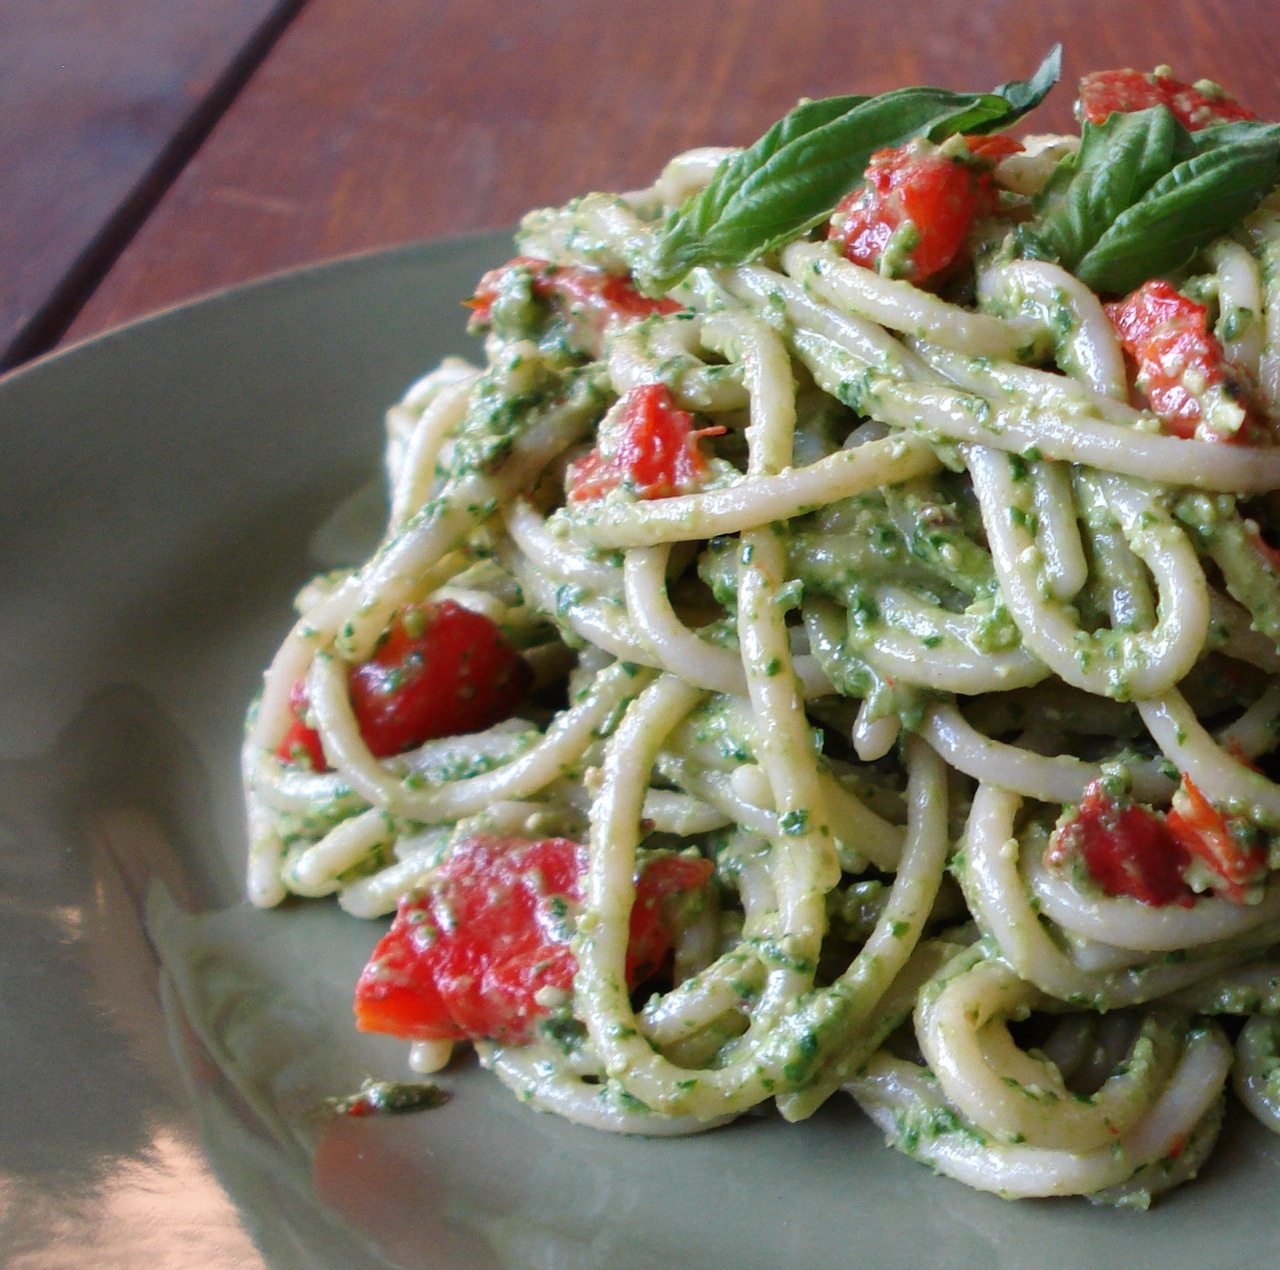 Spinach & Roasted Red Pepper Pesto